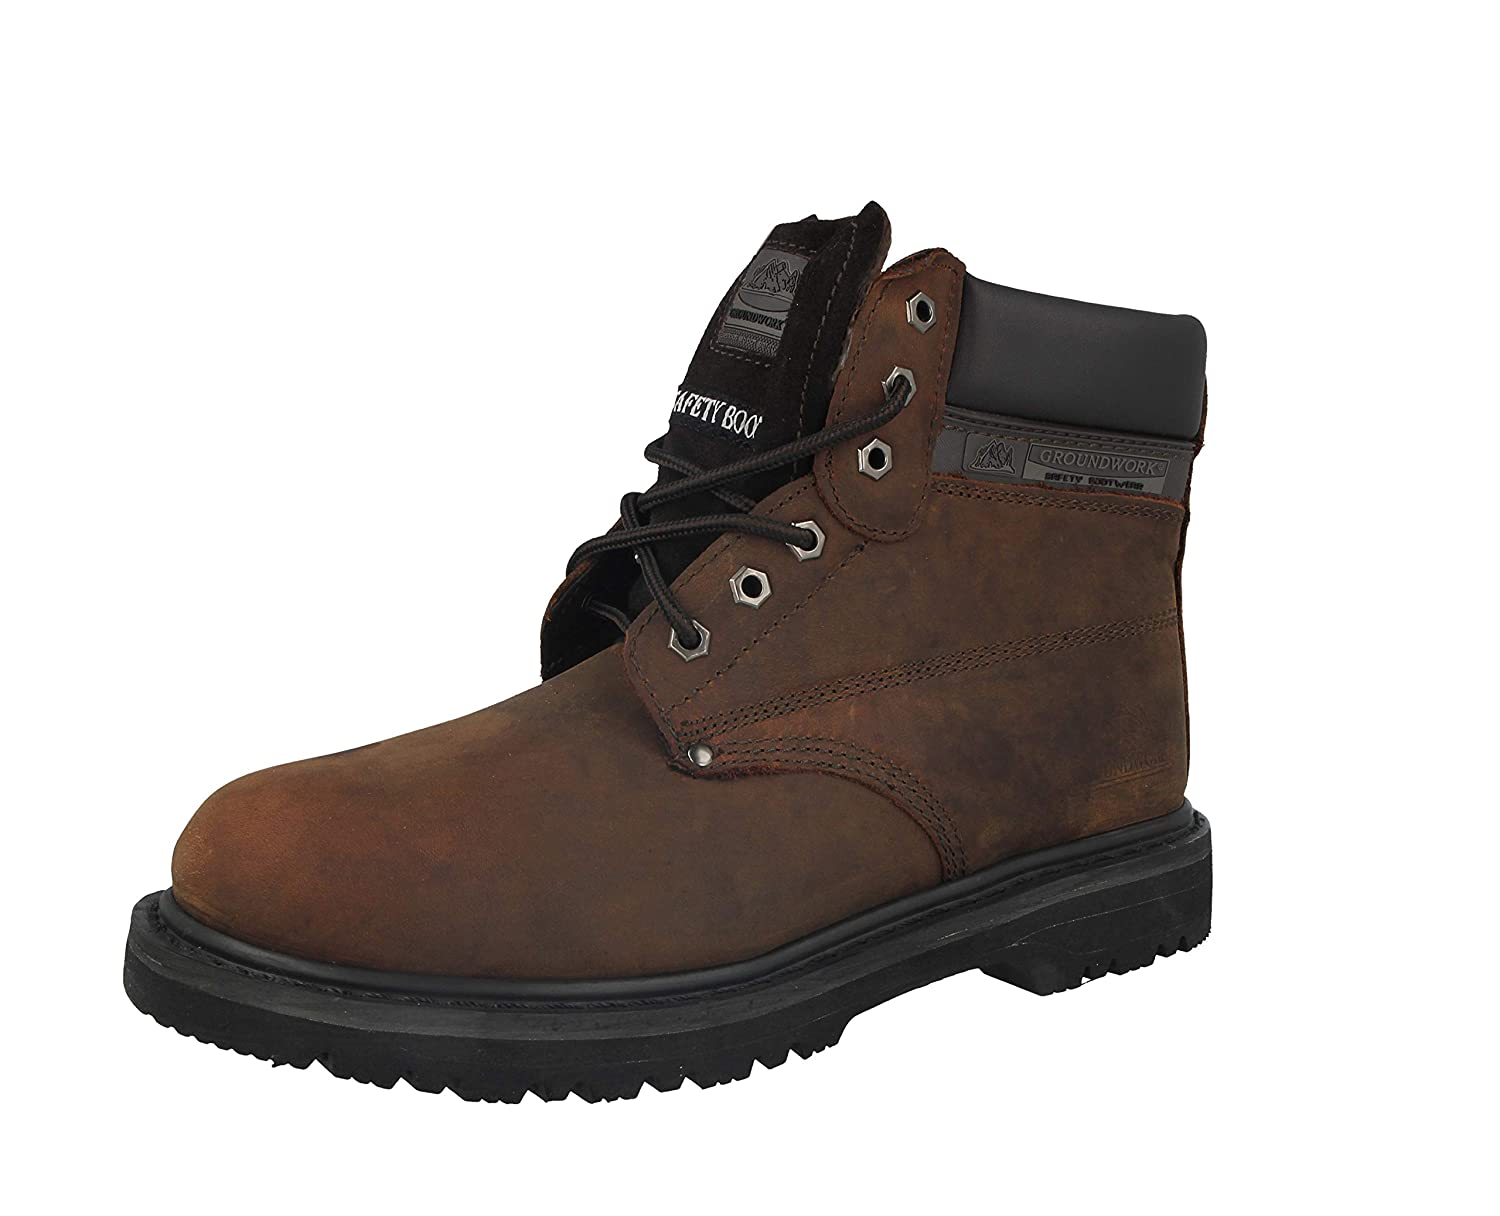 New Mens Groundwork Lace Up Steel Toe Safety Ankle Boots Size UK 7 8 9 10 11,